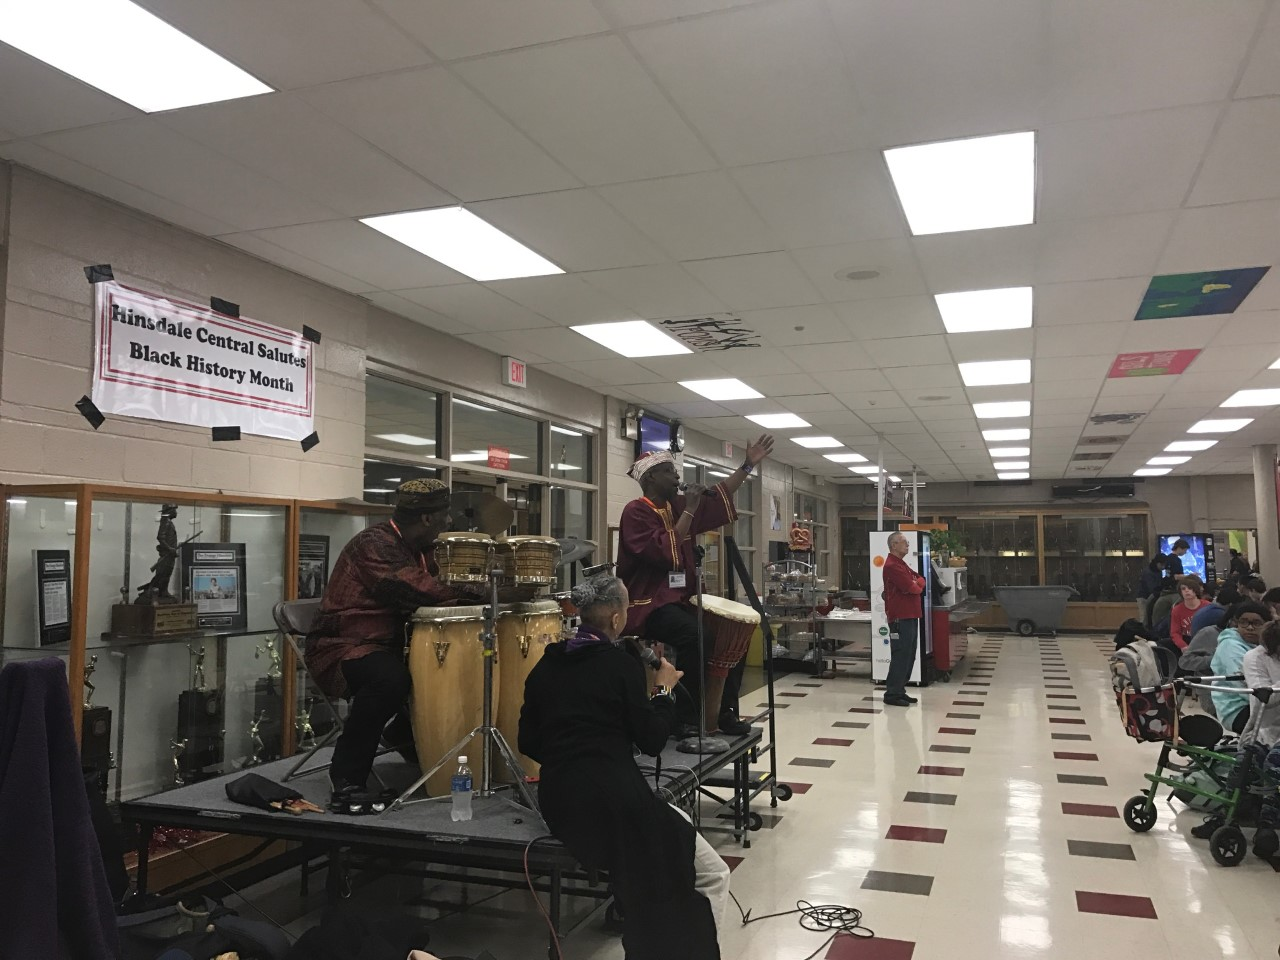 Students welcomed an African American drumming troupe to perform during the lunch periods on Feb. 7 as part of the Black History Month celebrations.